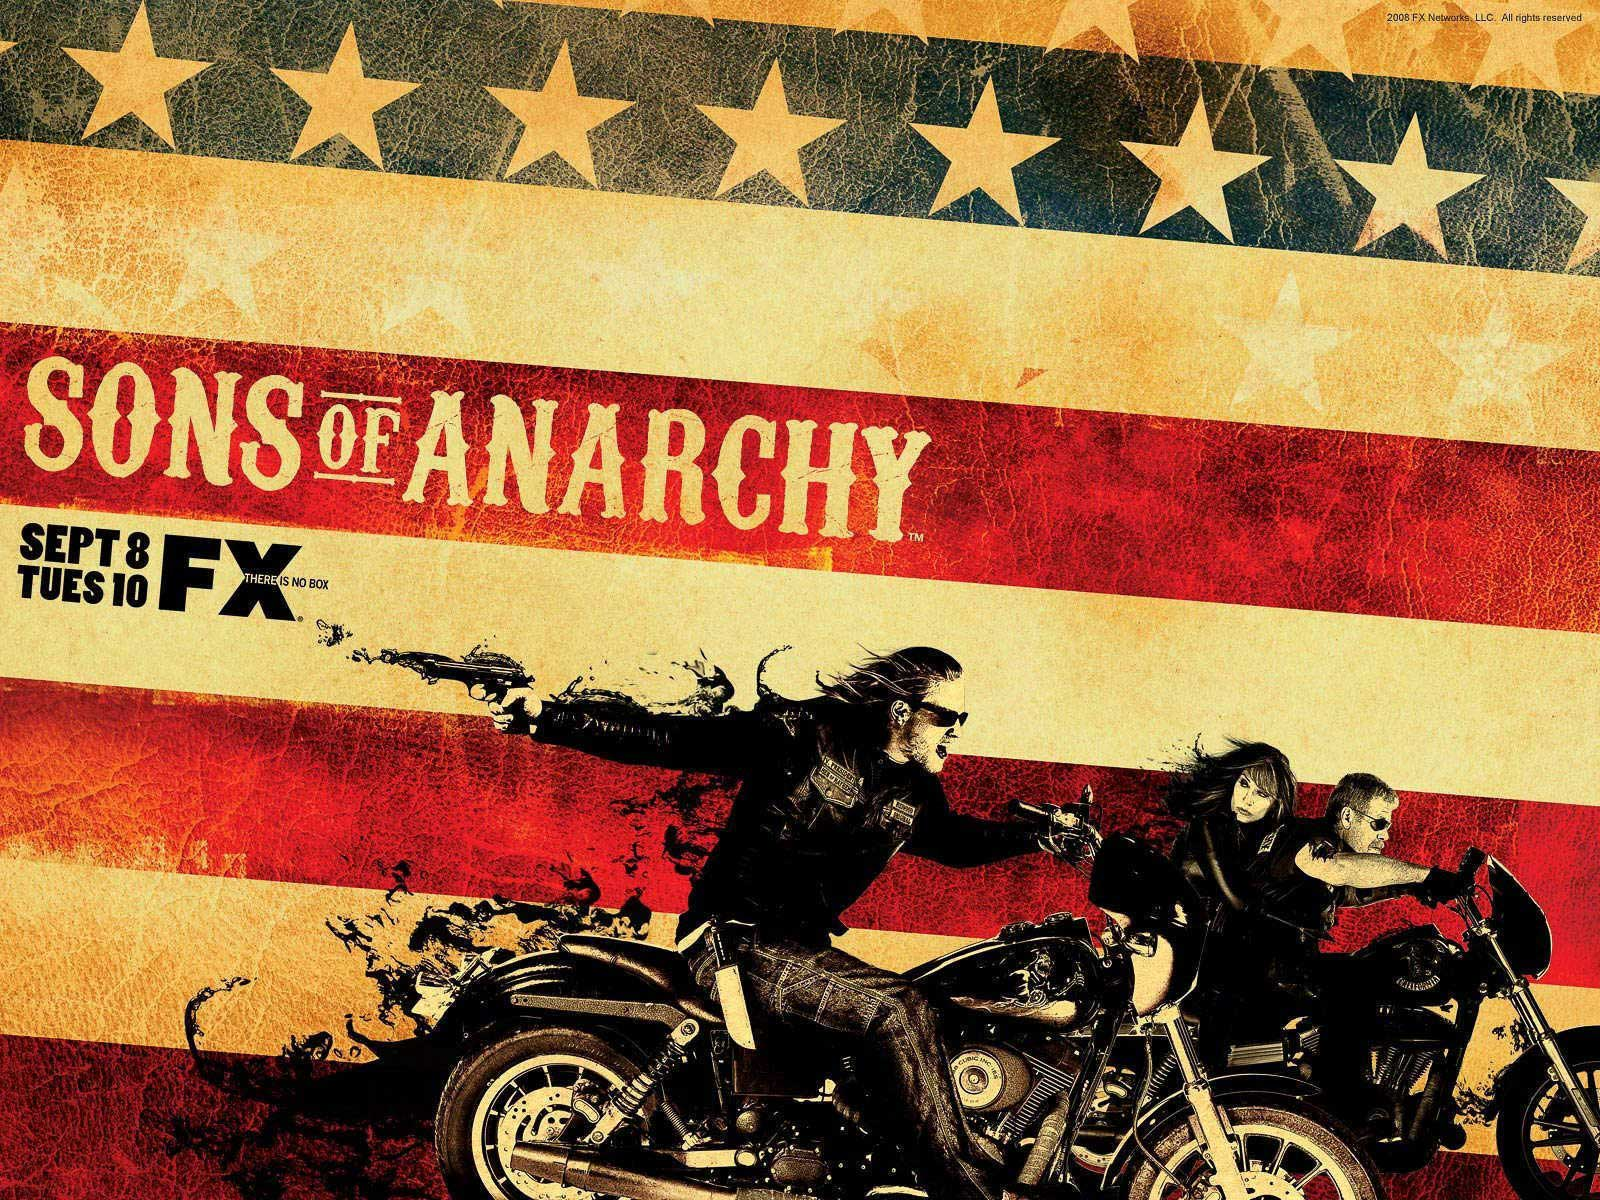 Sons Of Anarchy (VoicesFILM) [1600 x 1200] (5)